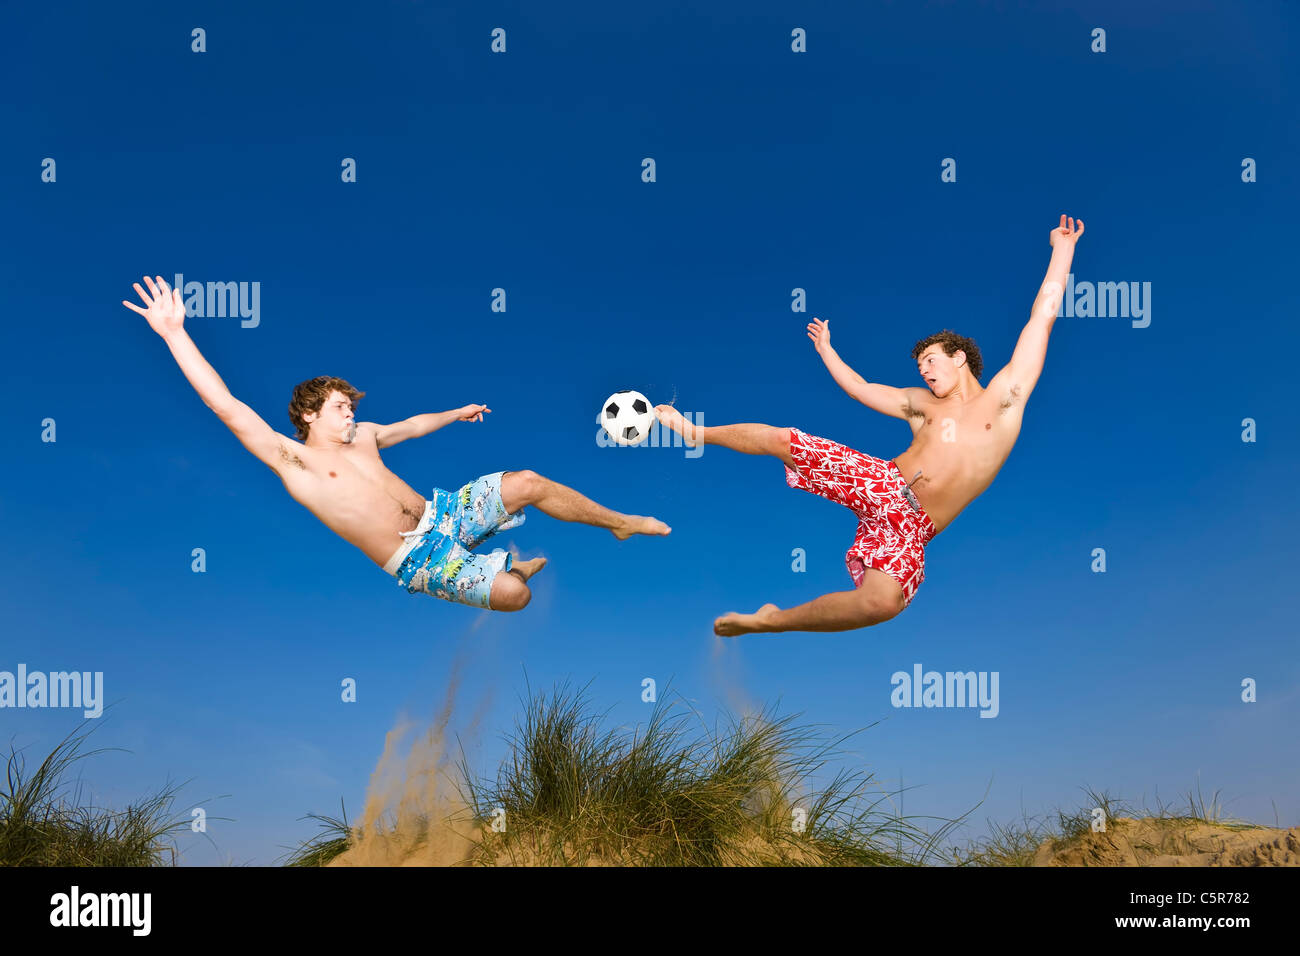 Two players playing beach soccer compete for the ball. - Stock Image